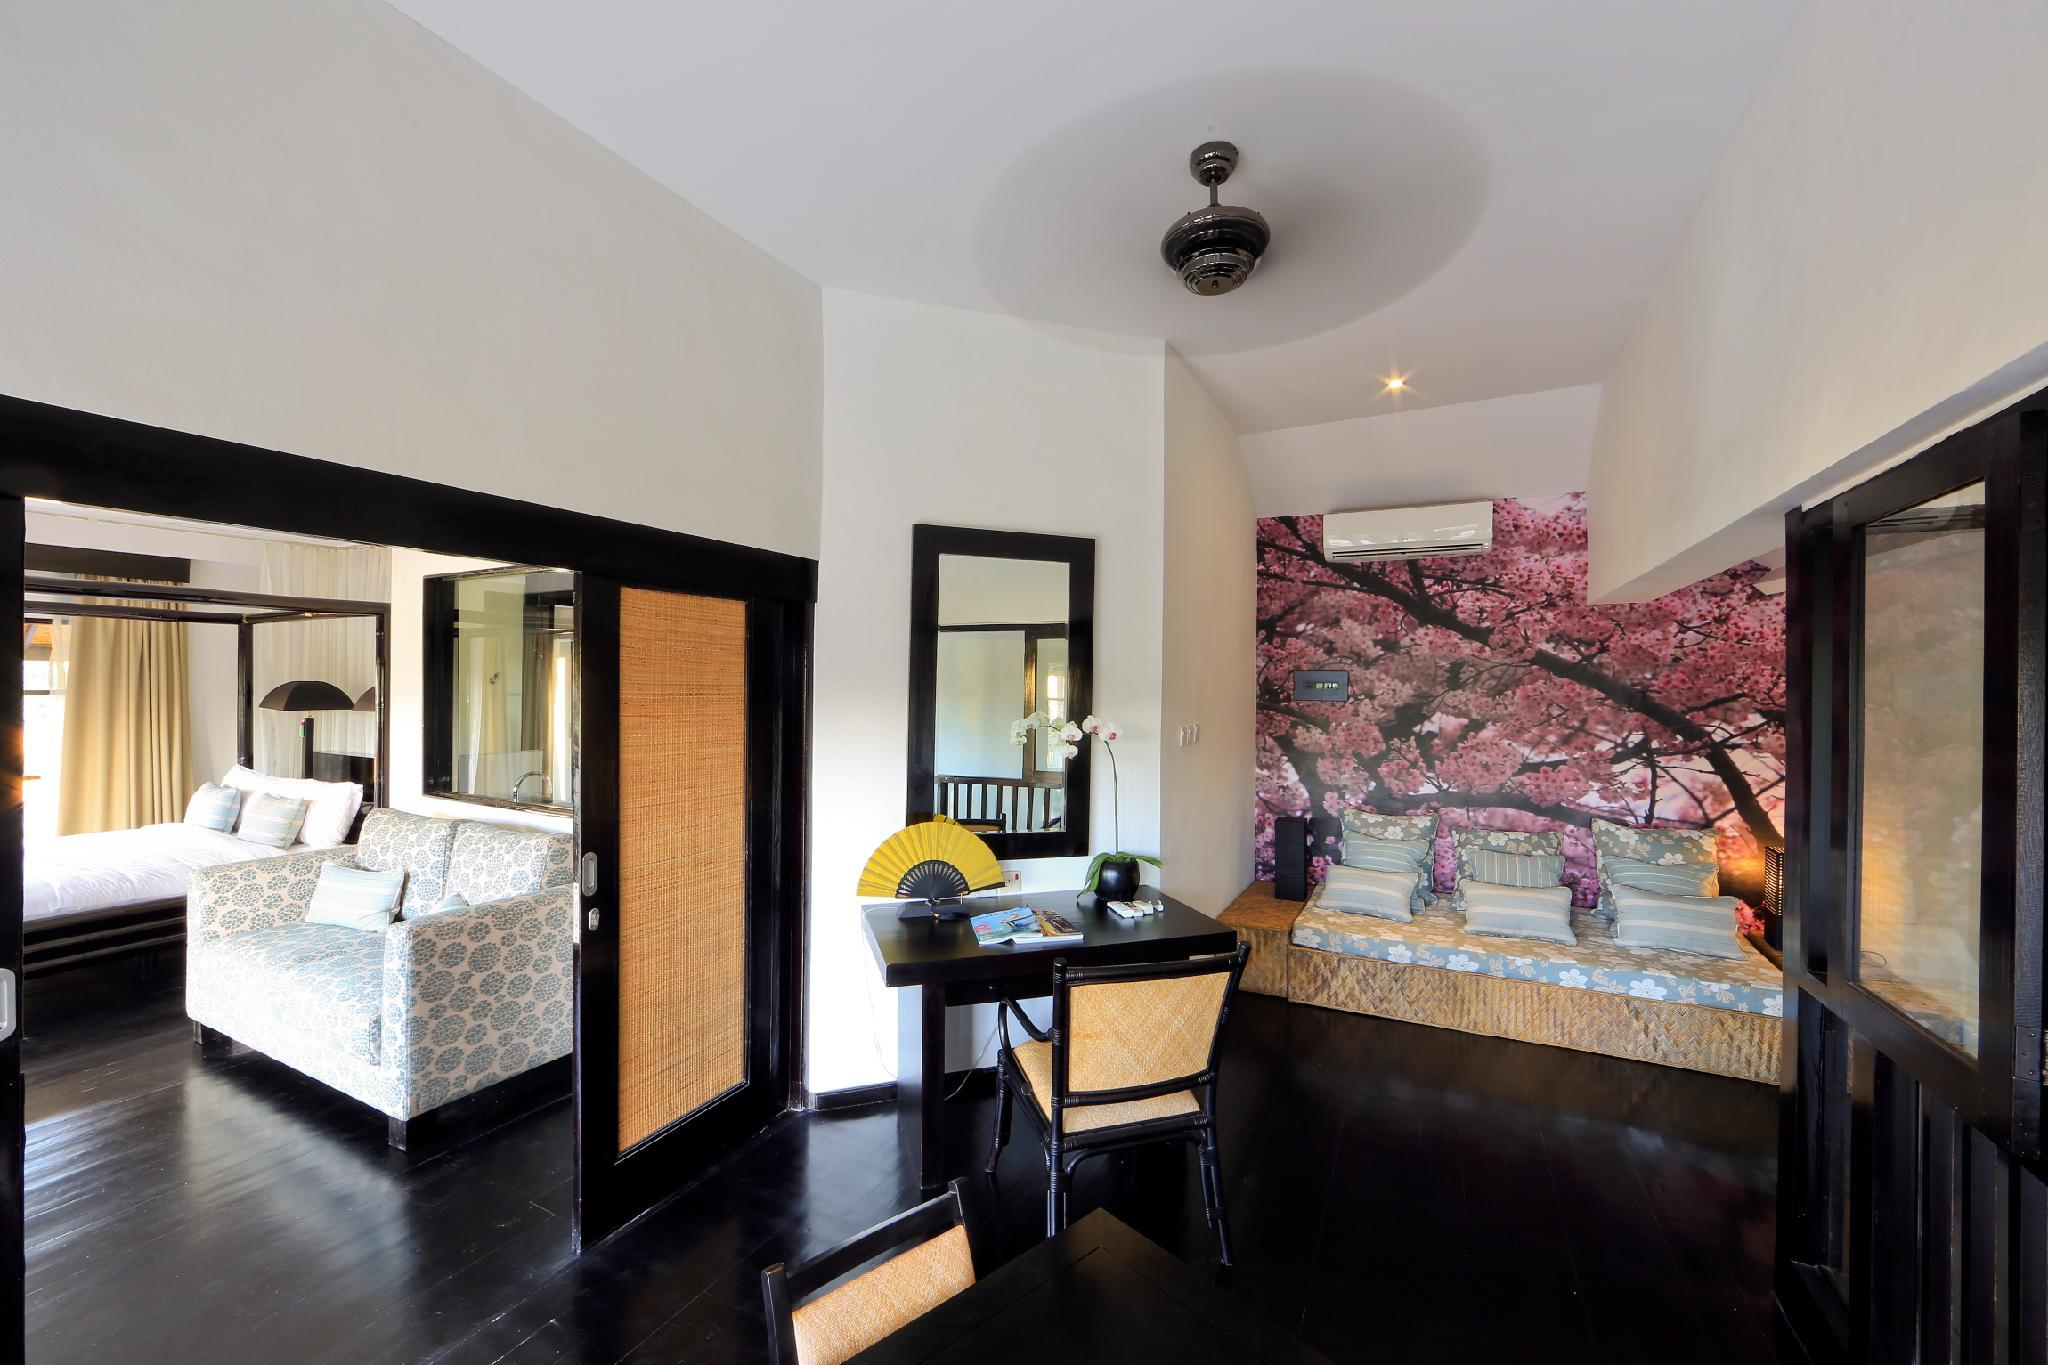 2 Bedrooms Private Pool Japanese Style Villa